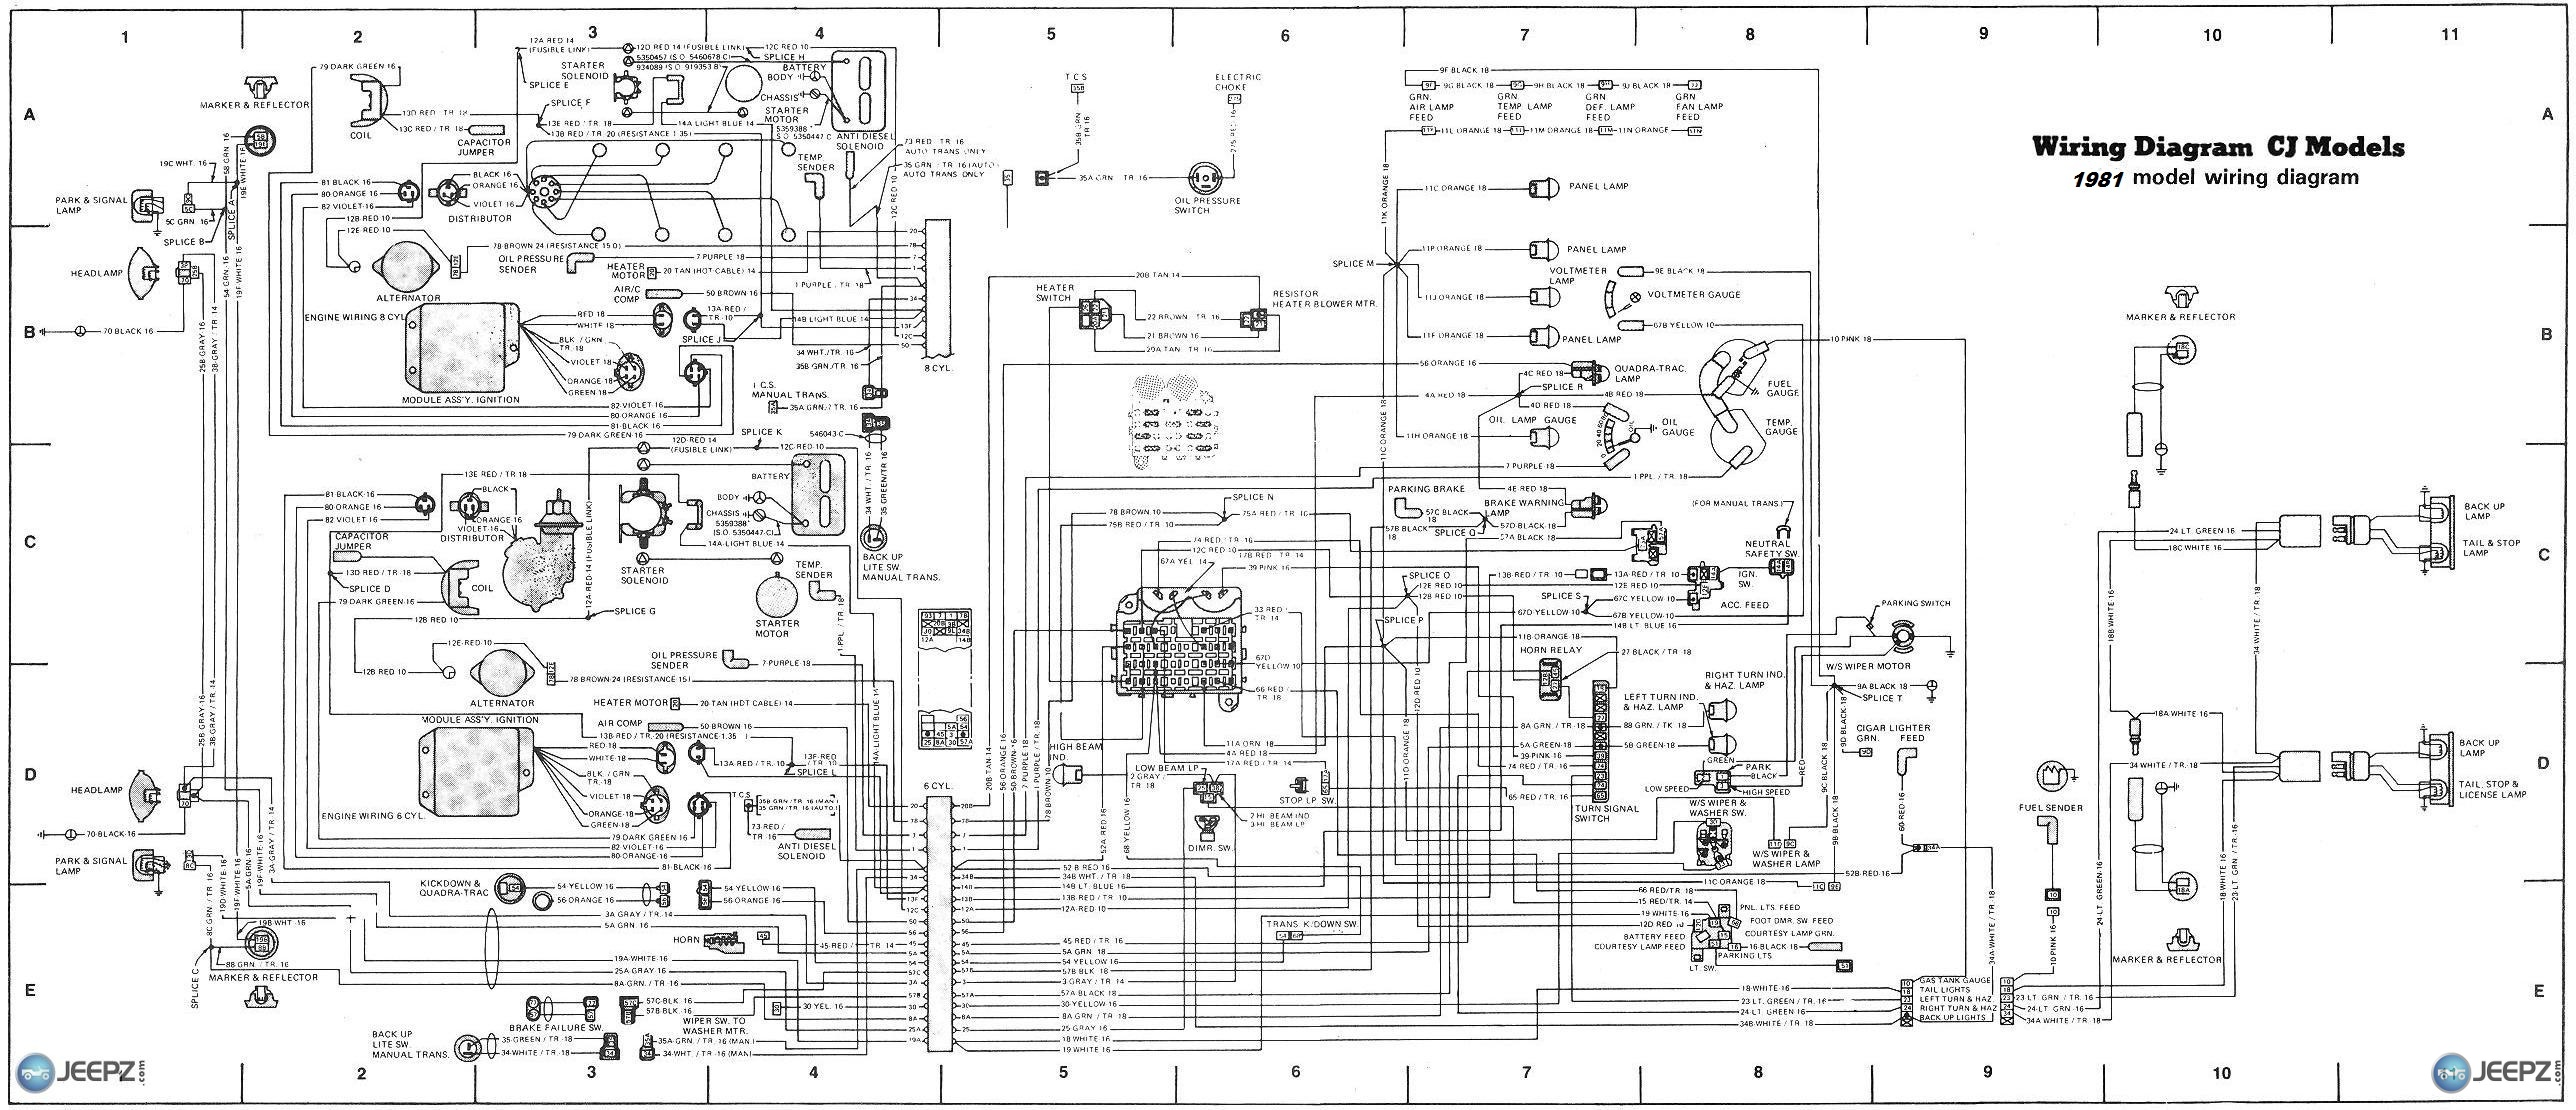 7993d1301845049 cj 7 wire diagram cj wiring diagram 1981 cj 7 wire diagram  at gsmx.co